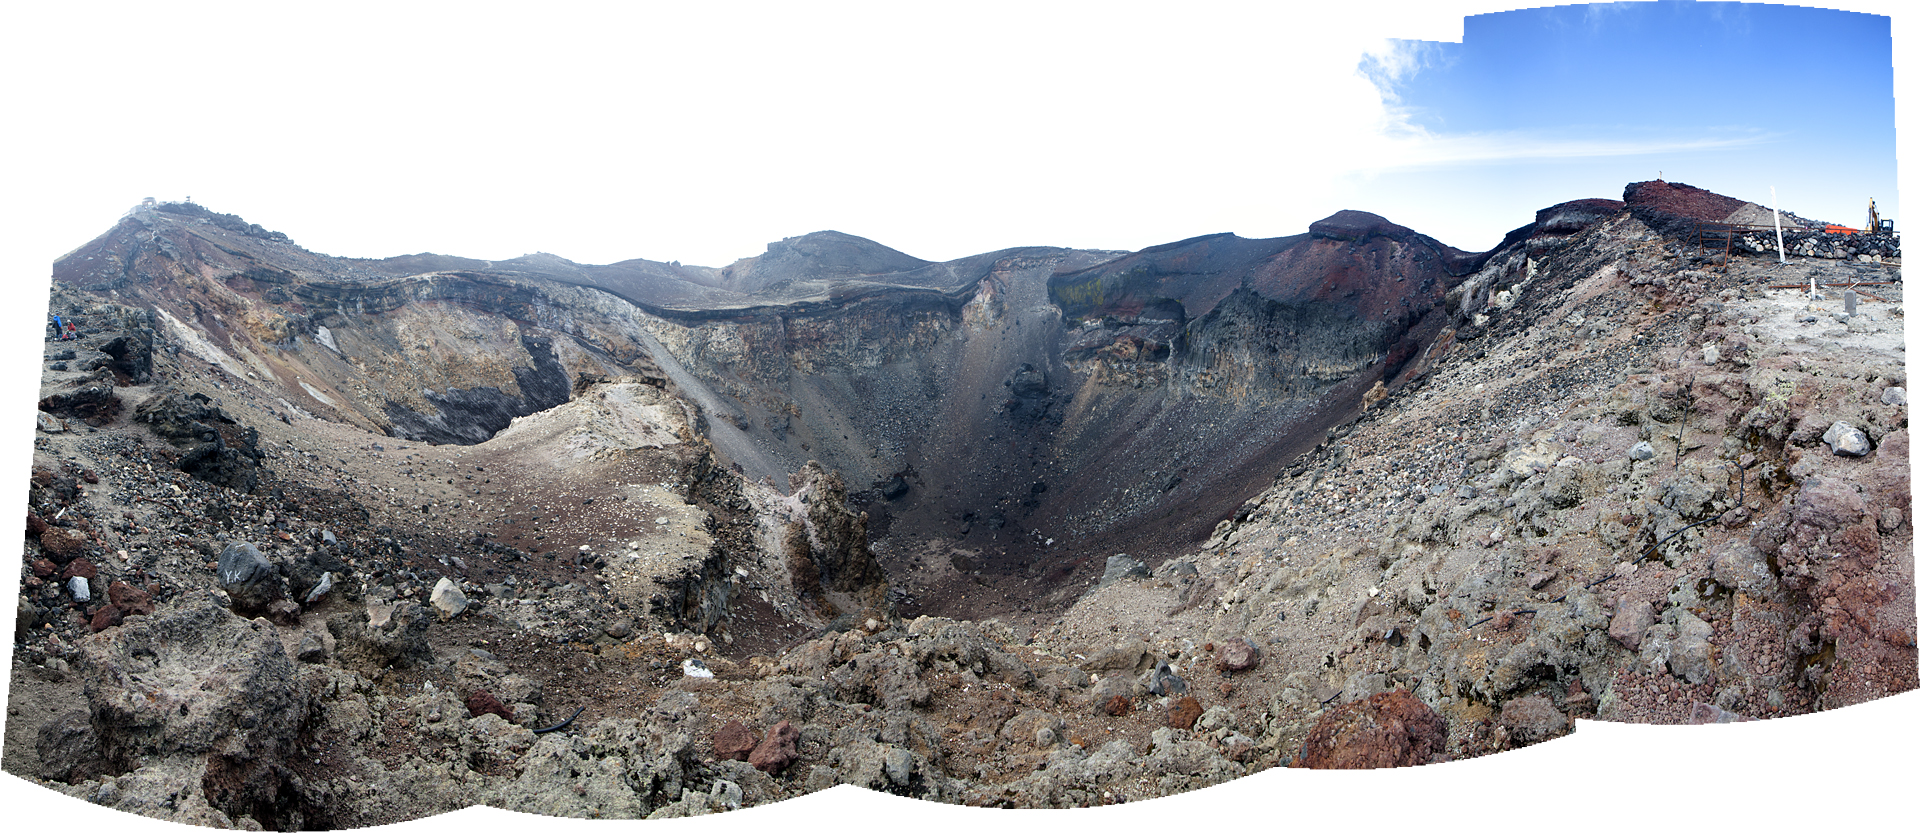 A panorama of the crater at the top